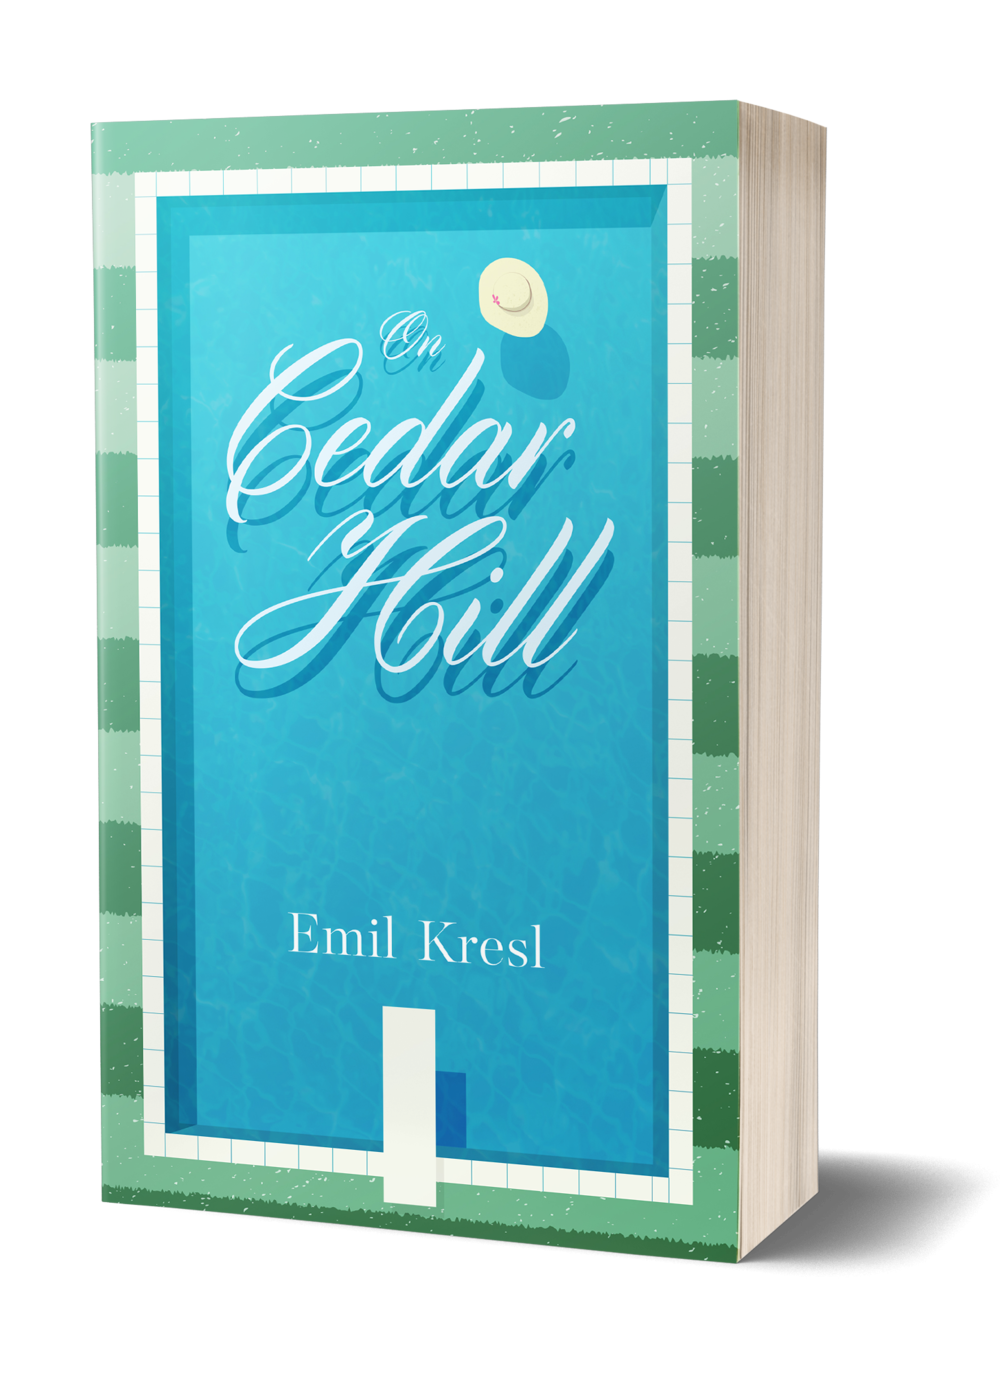 On Cedar Hill book cover, blue pool, surrounded by rows of green lawns, diving board, hat floating in pool